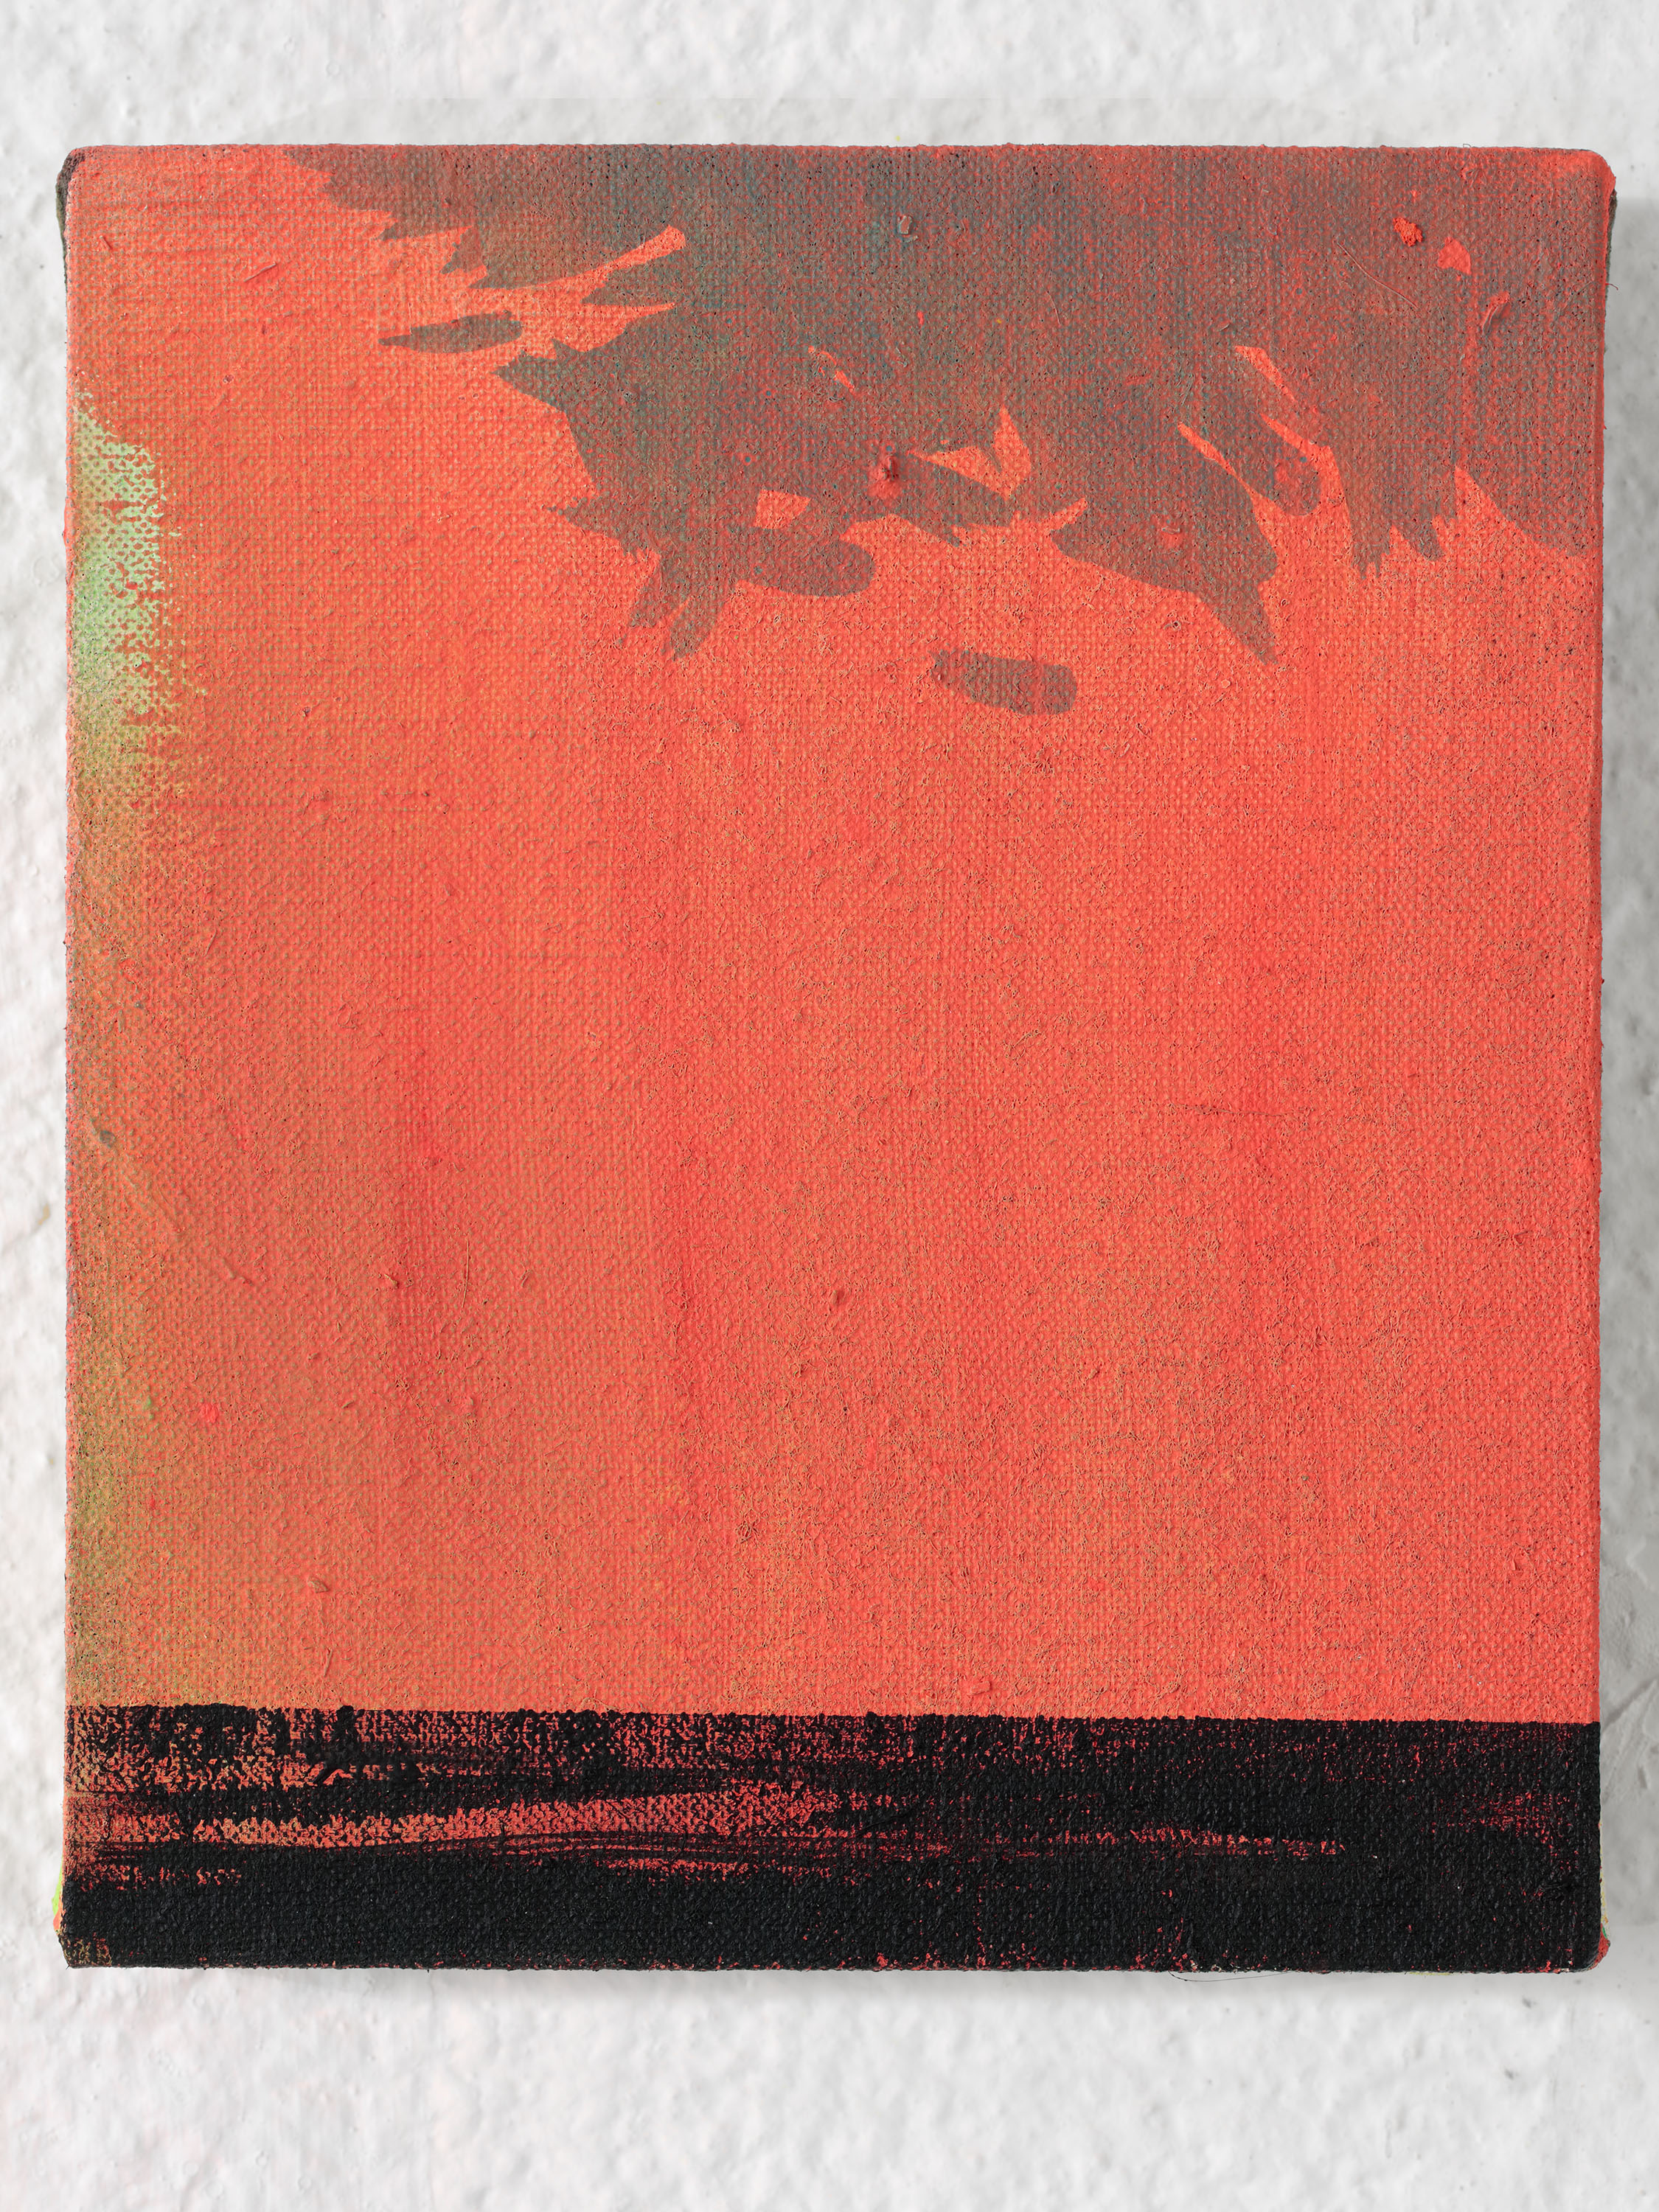 NO in the forest no. 3 / from the DATA series / 20 x 17 cm / acrylic, canvas / 2108